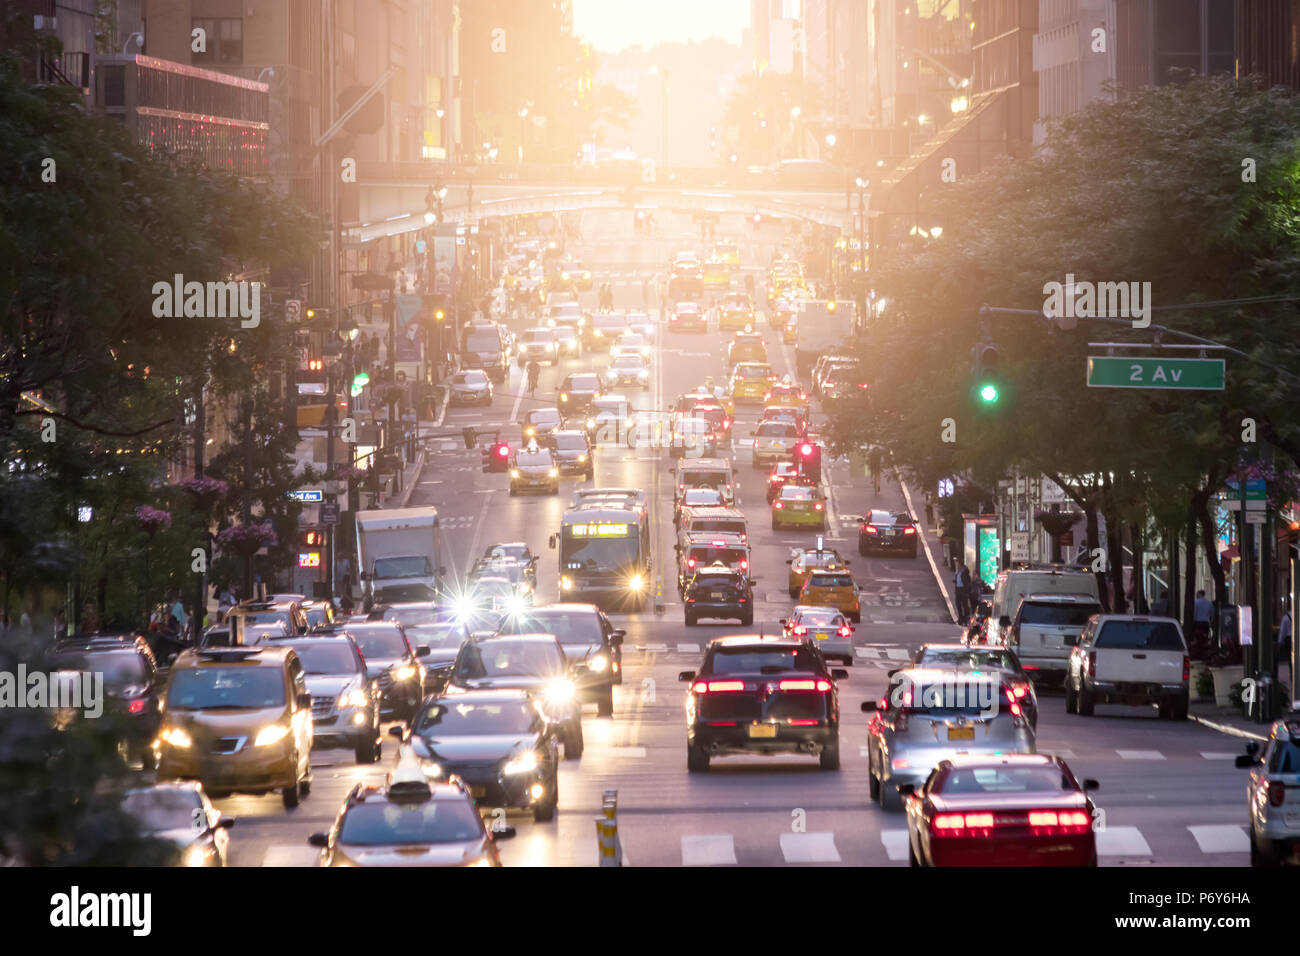 Crosstown traffic on 42nd Street in Midtown Manhattan New York City with sunlight in background - Stock Image